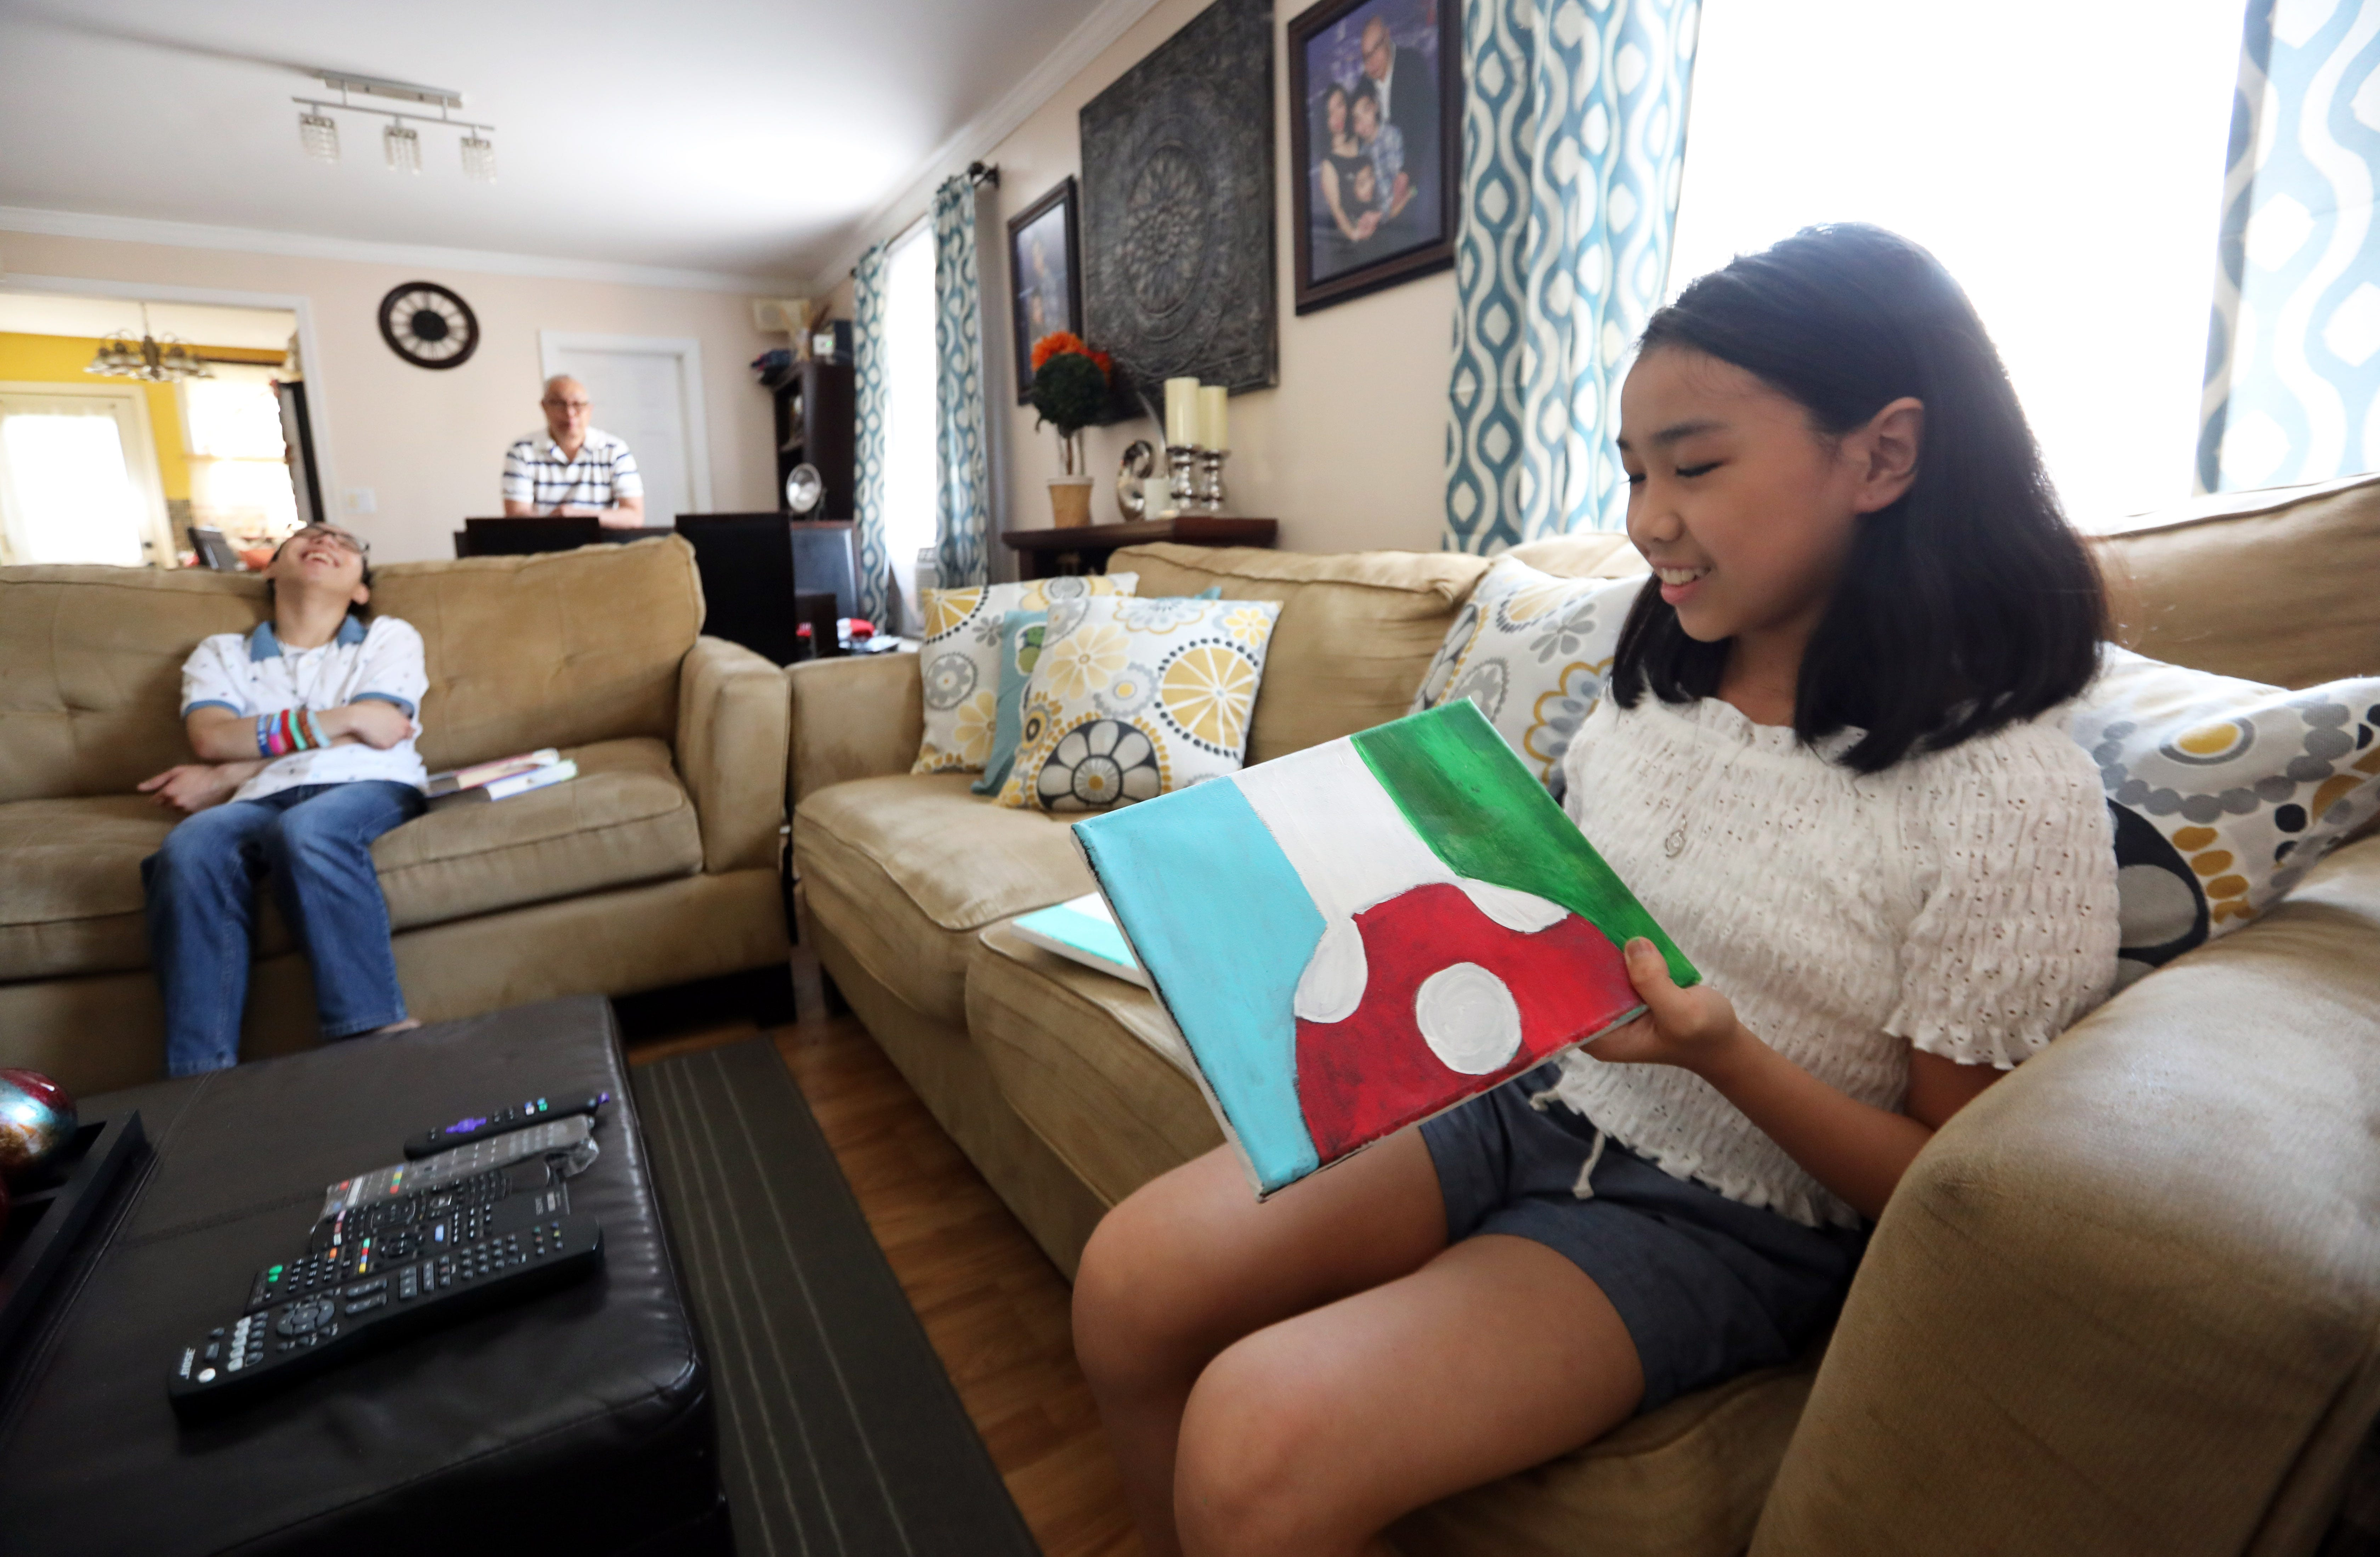 Julia Santiago, 11, has been painting more while at home during the pandemic. She shows some of her recent work at home in Mount Vernon May 27, 2021. Julia and her brother, Bryan, 17, have been remote learning since the pandemic began in March 2020.